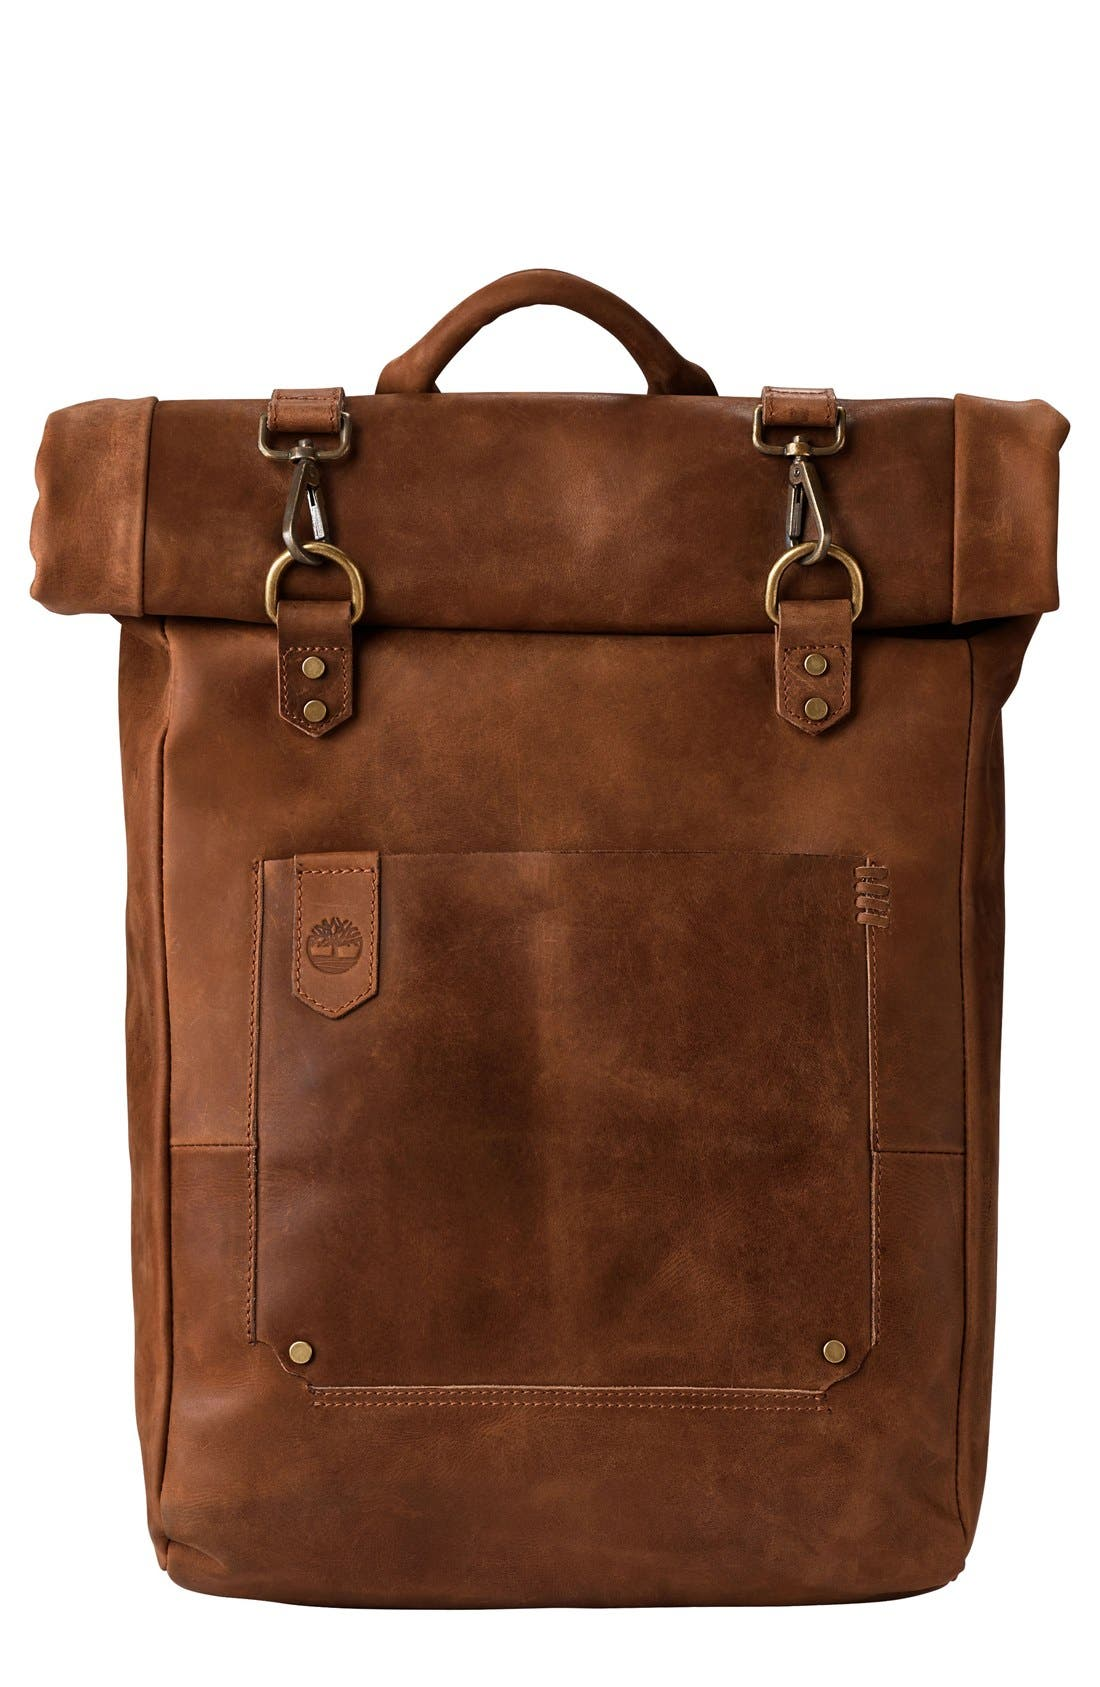 Men's Leather (Genuine) Bags: Briefcases, Computer Bags, Backpacks ...